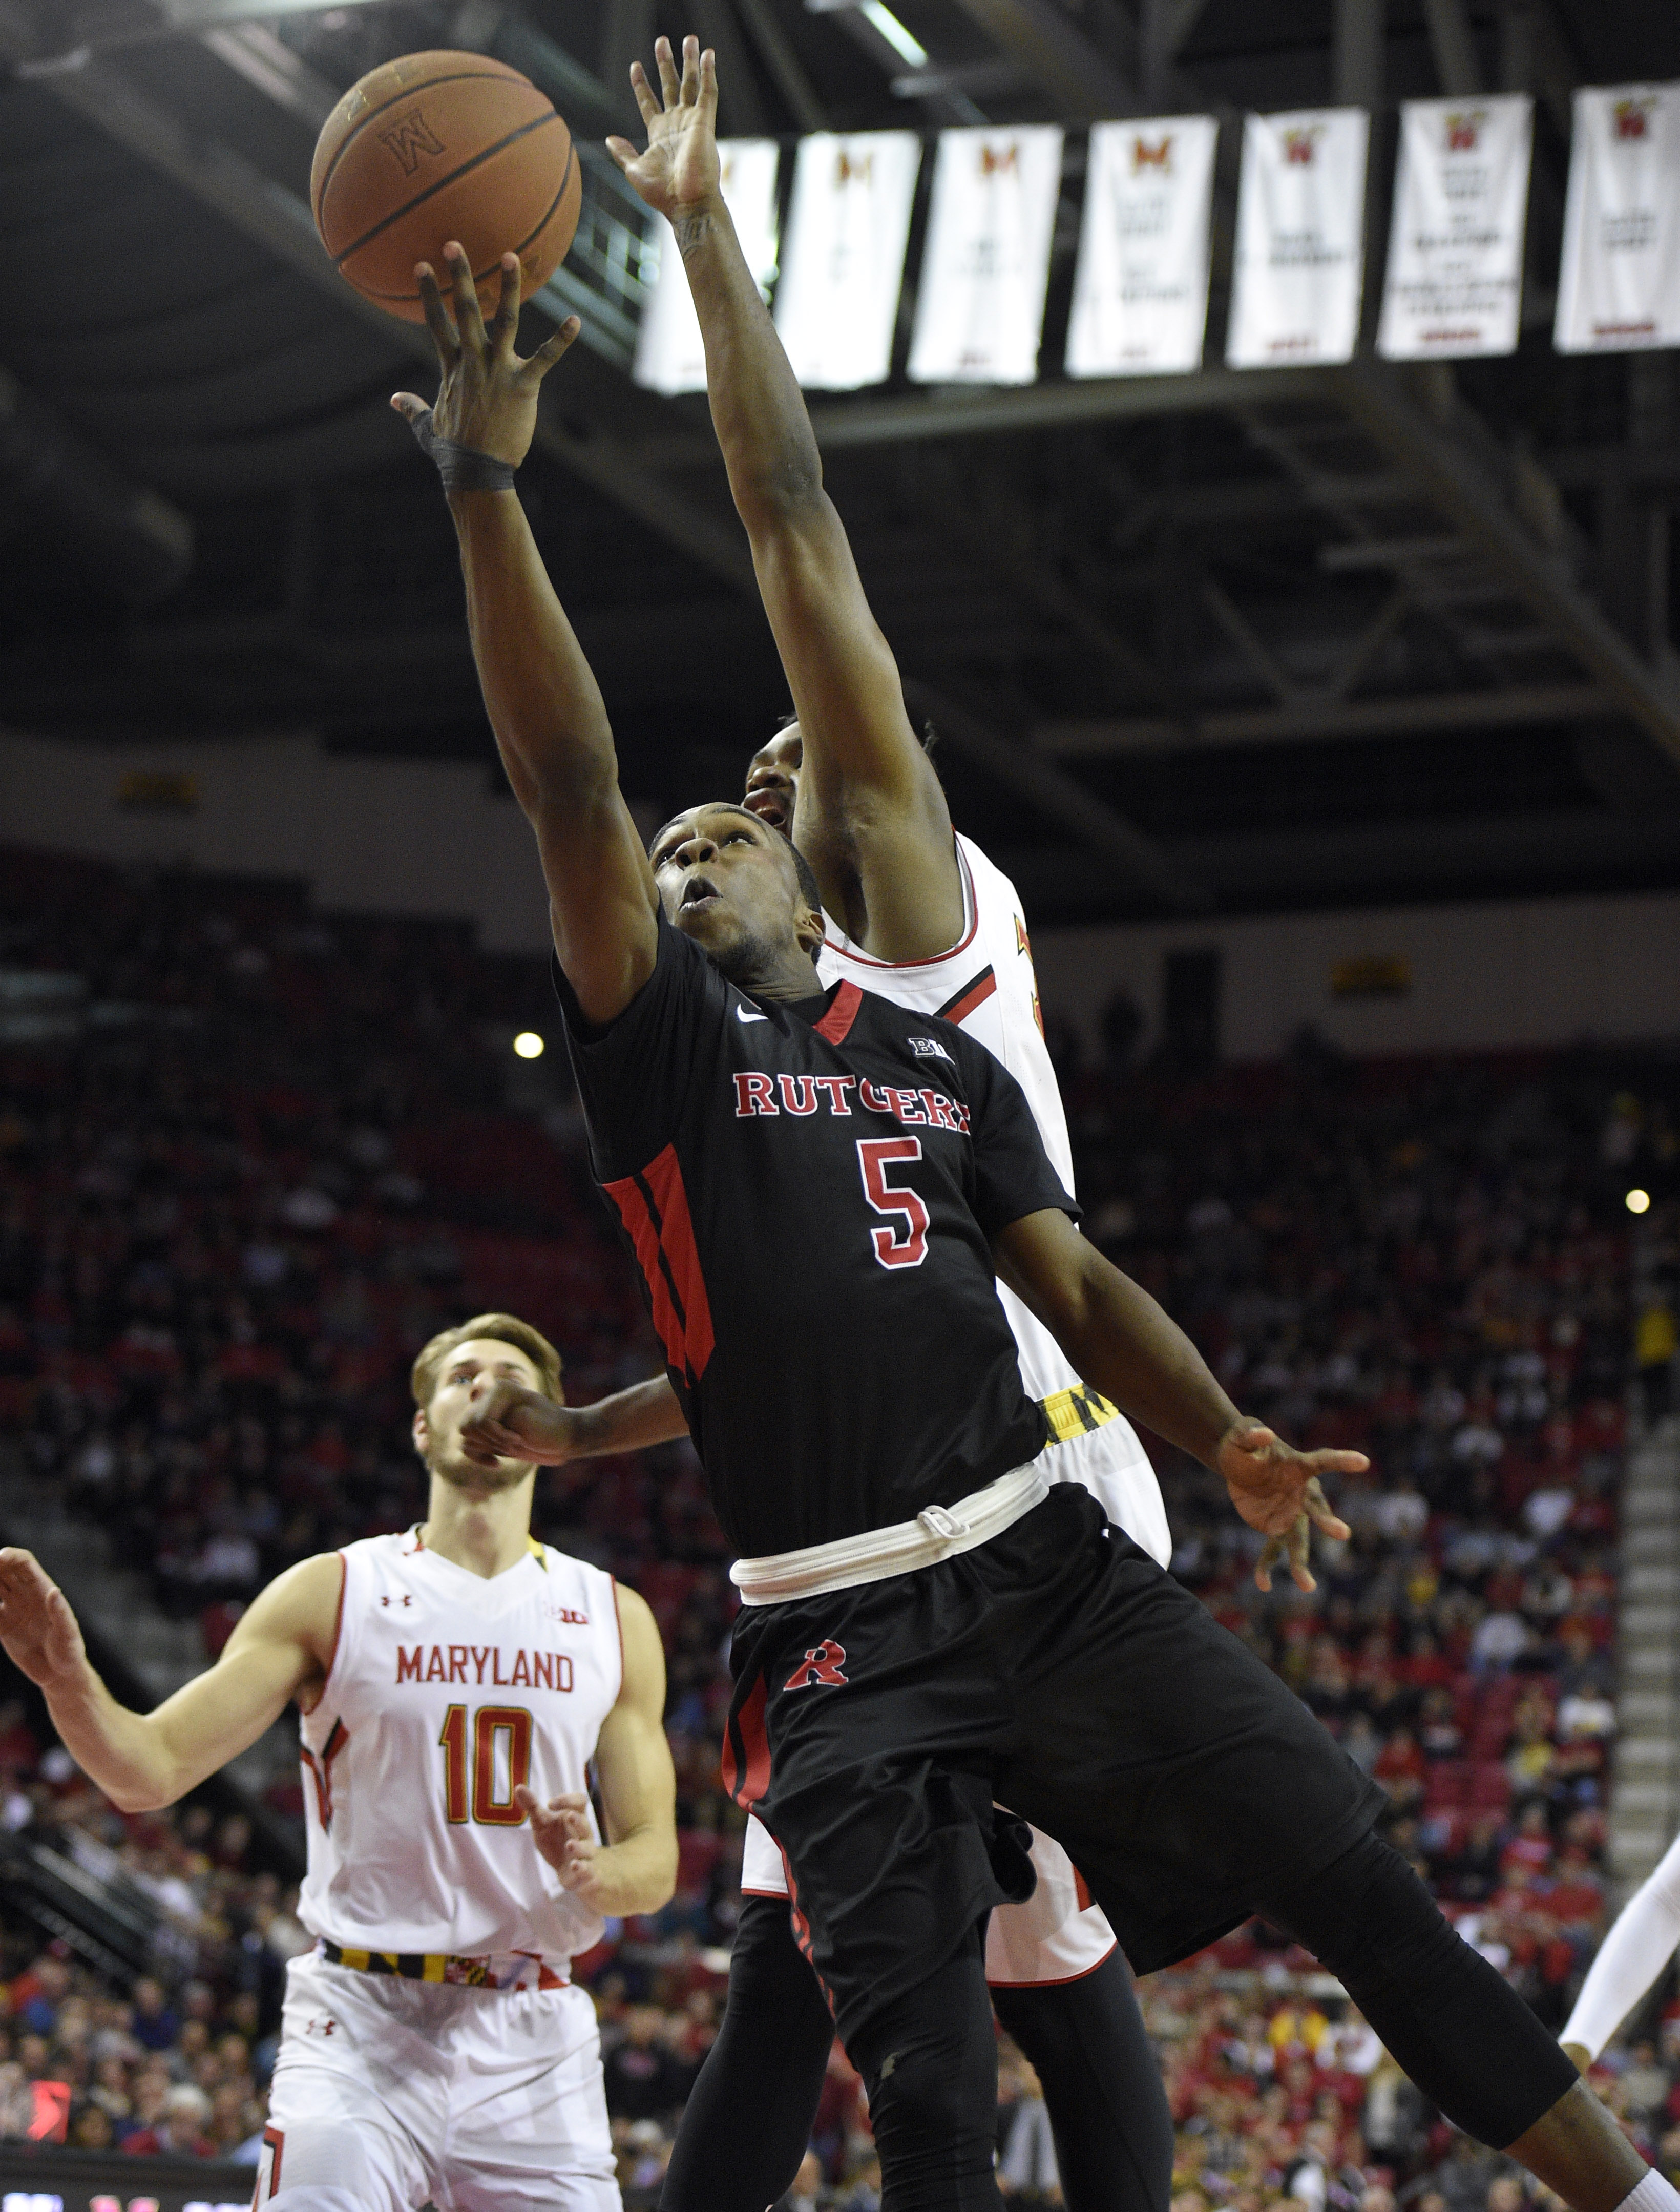 Rutgers guard Mike Williams (5) releases the ball next to the outstretched arm of Maryland center Diamond Stone, back right, as forward Jake Layman (10) watches during the first half of an NCAA college basketball game, Wednesday, Jan. 6, 2016, in College